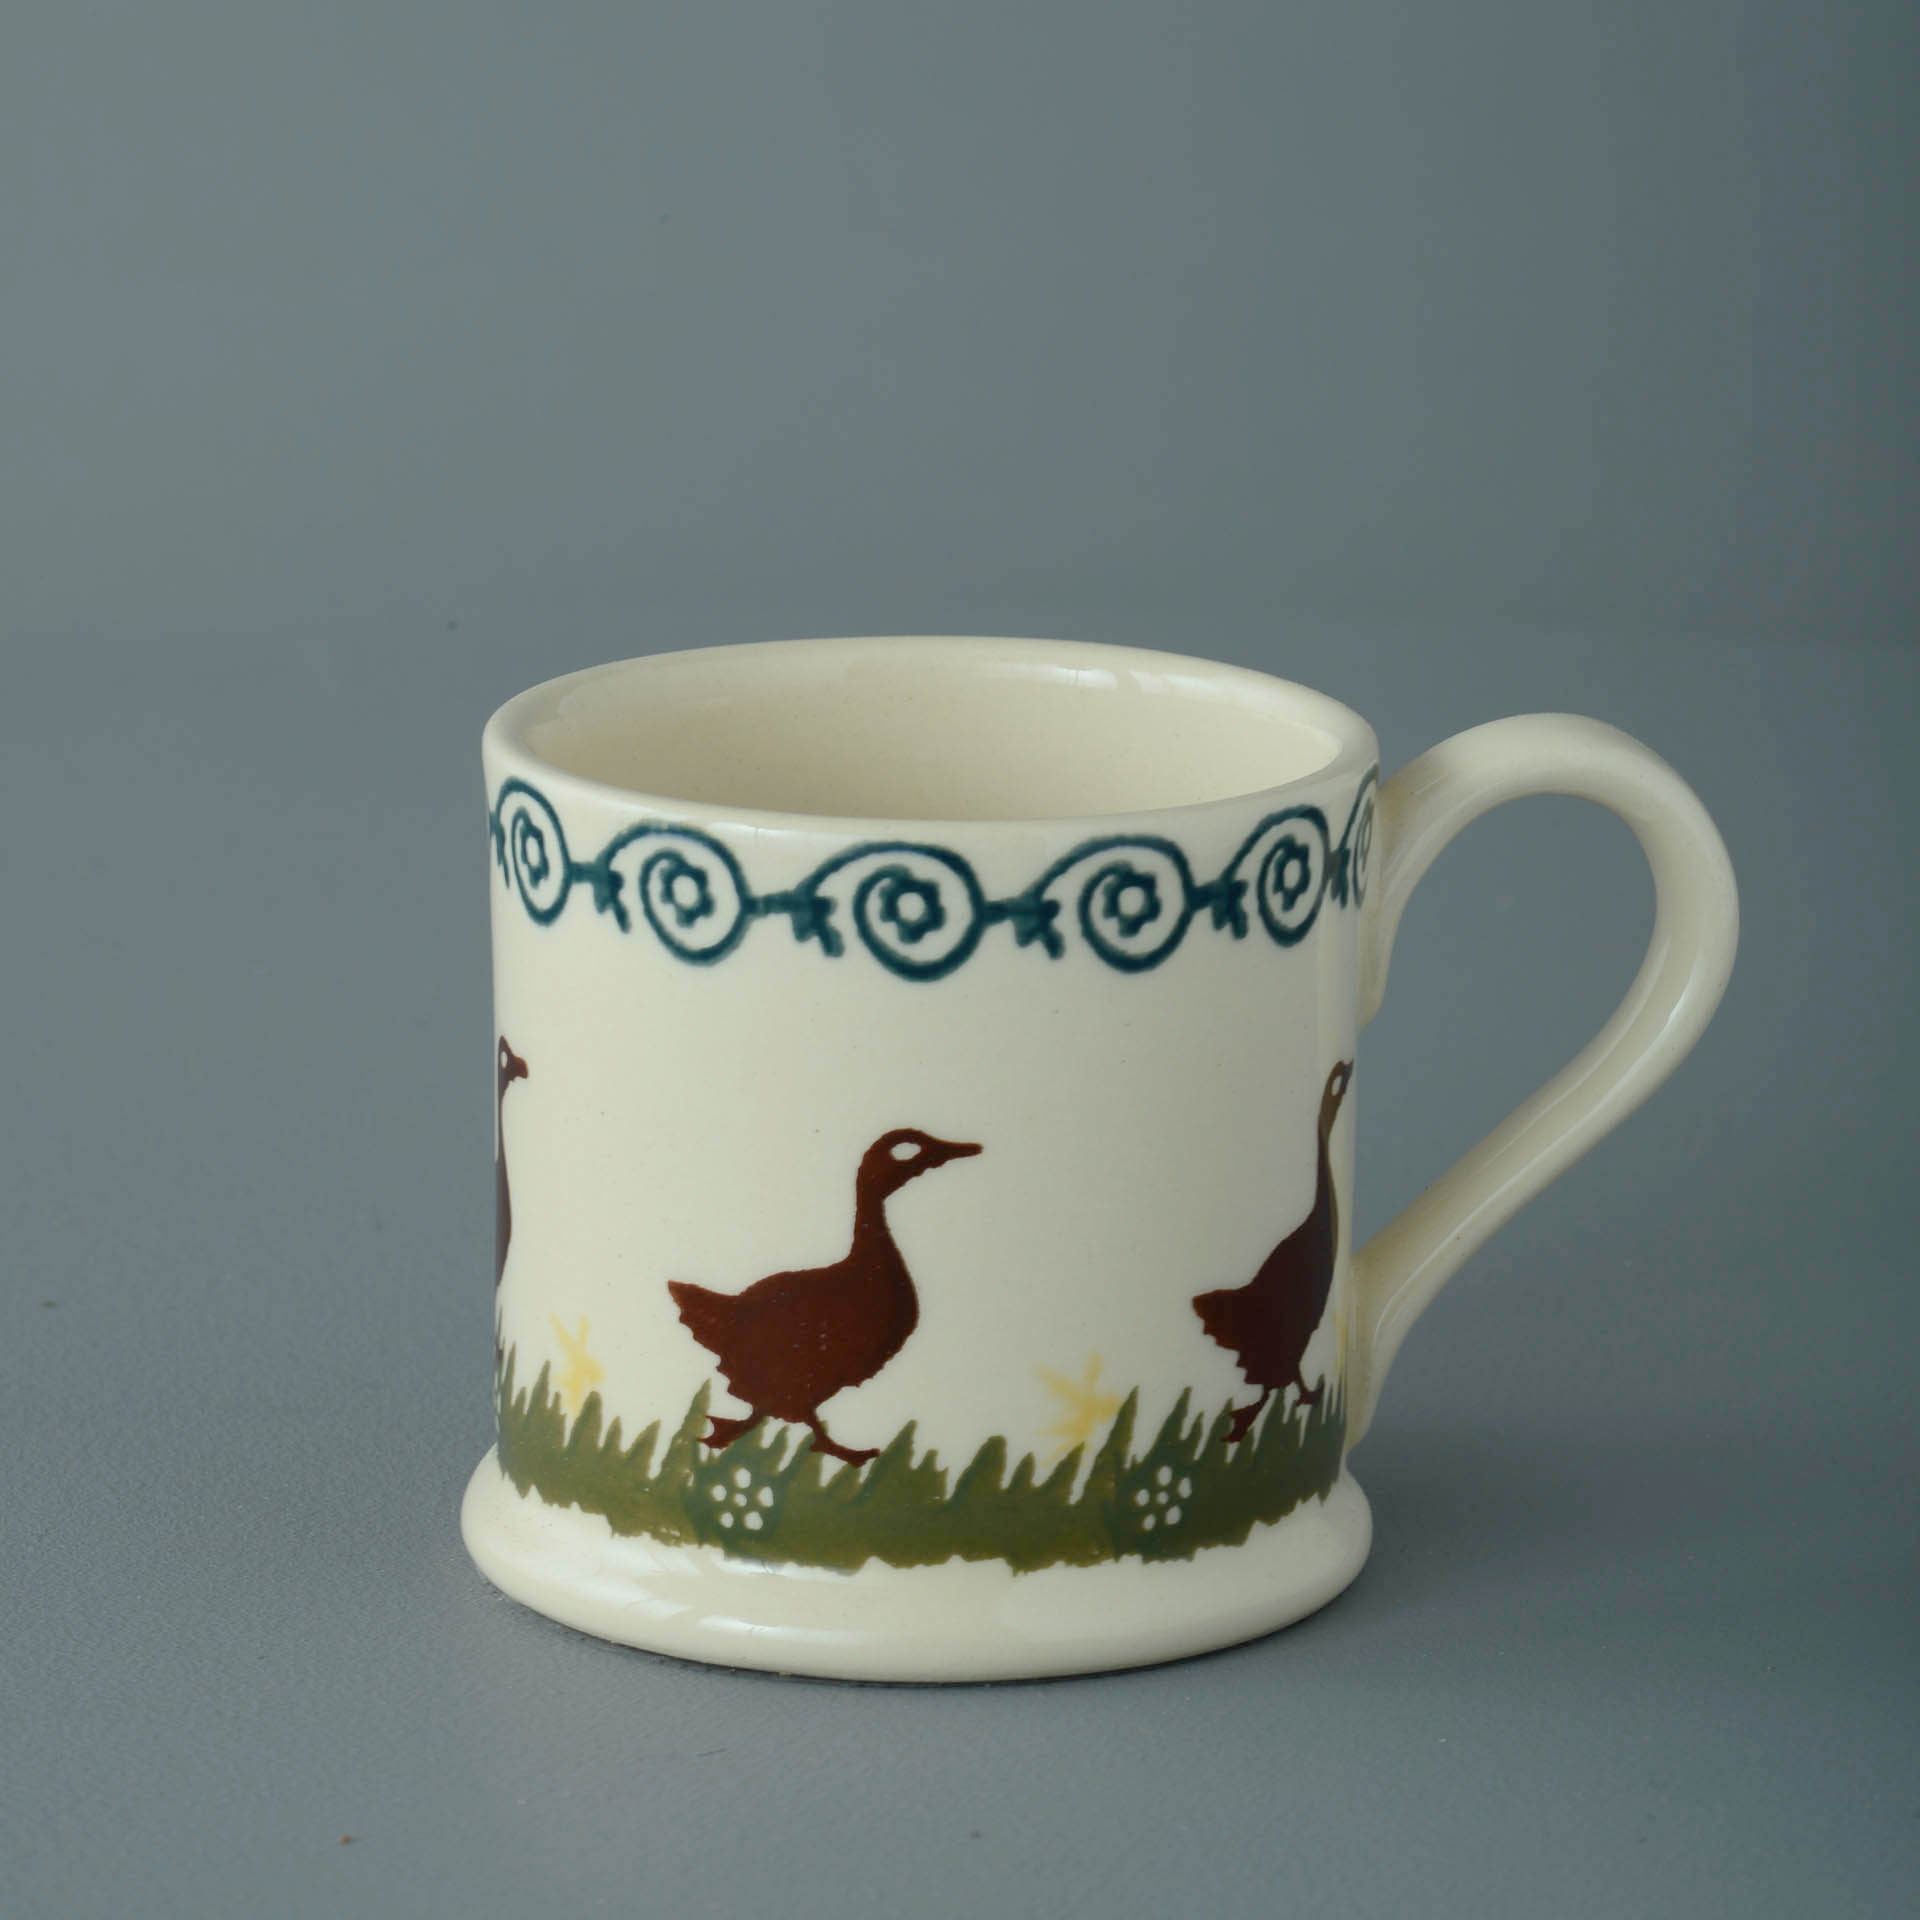 Ducks 150ml Small Mug 7 x 7.3cm